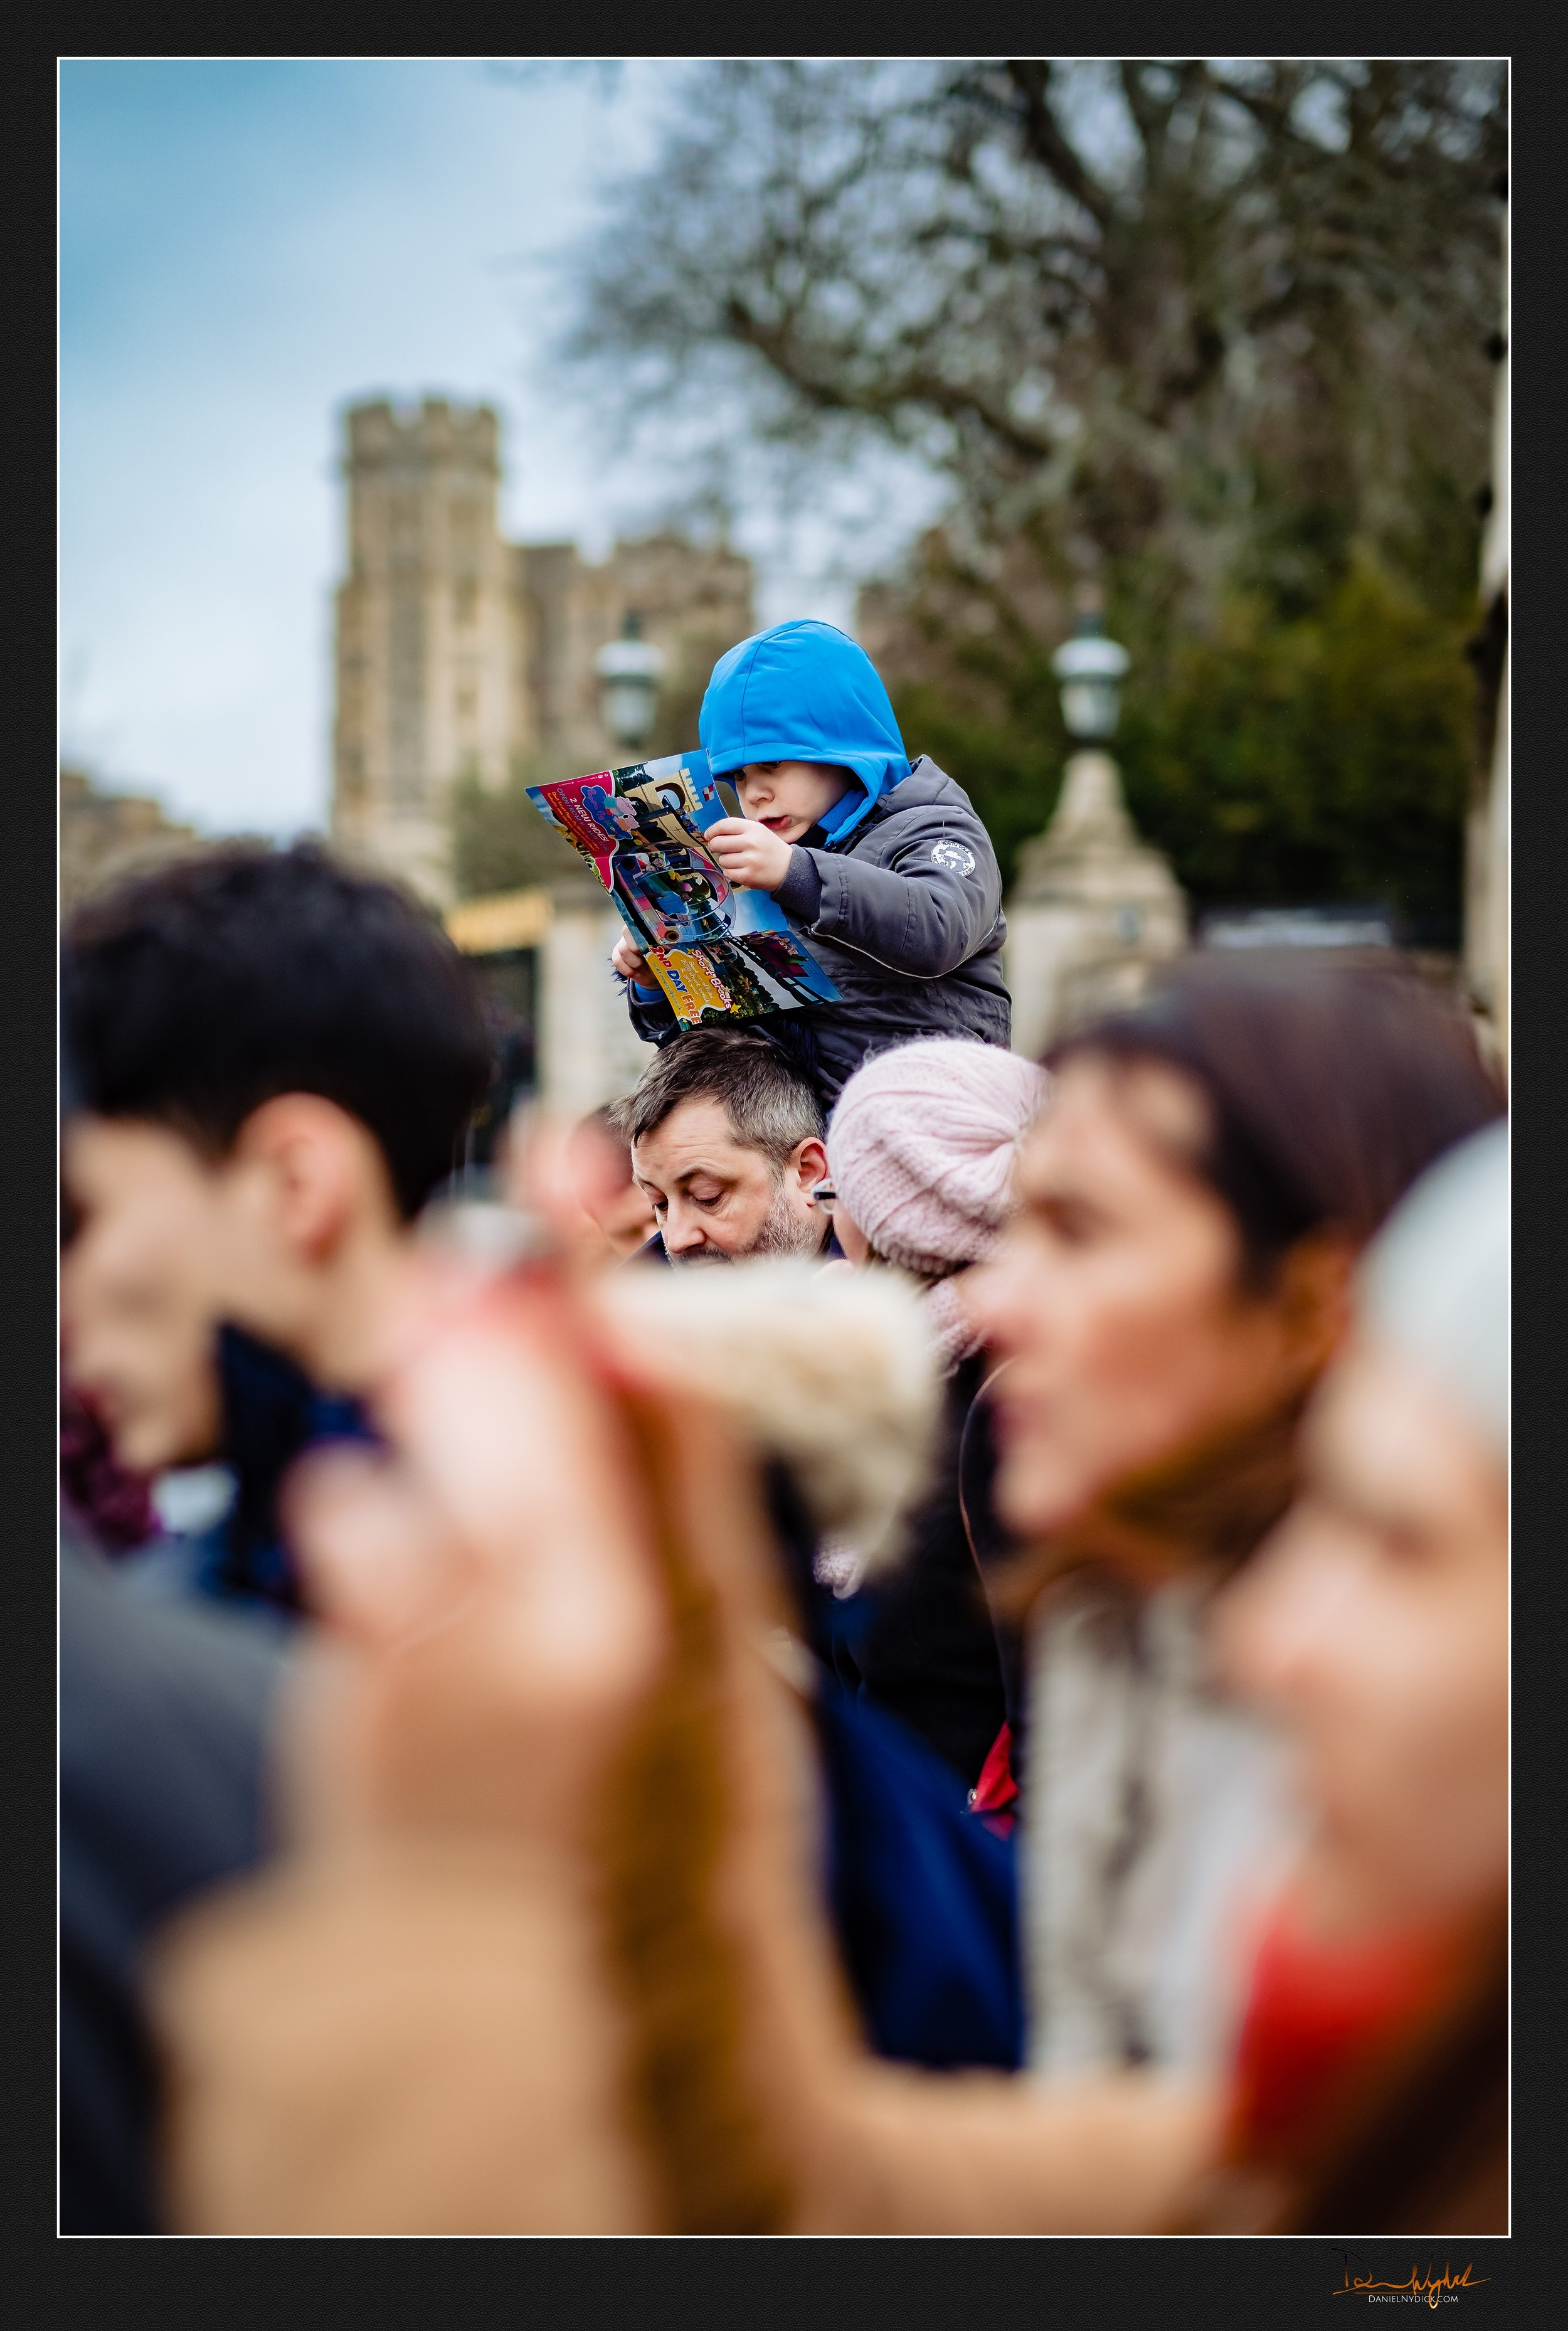 small child reading map, windsor castle